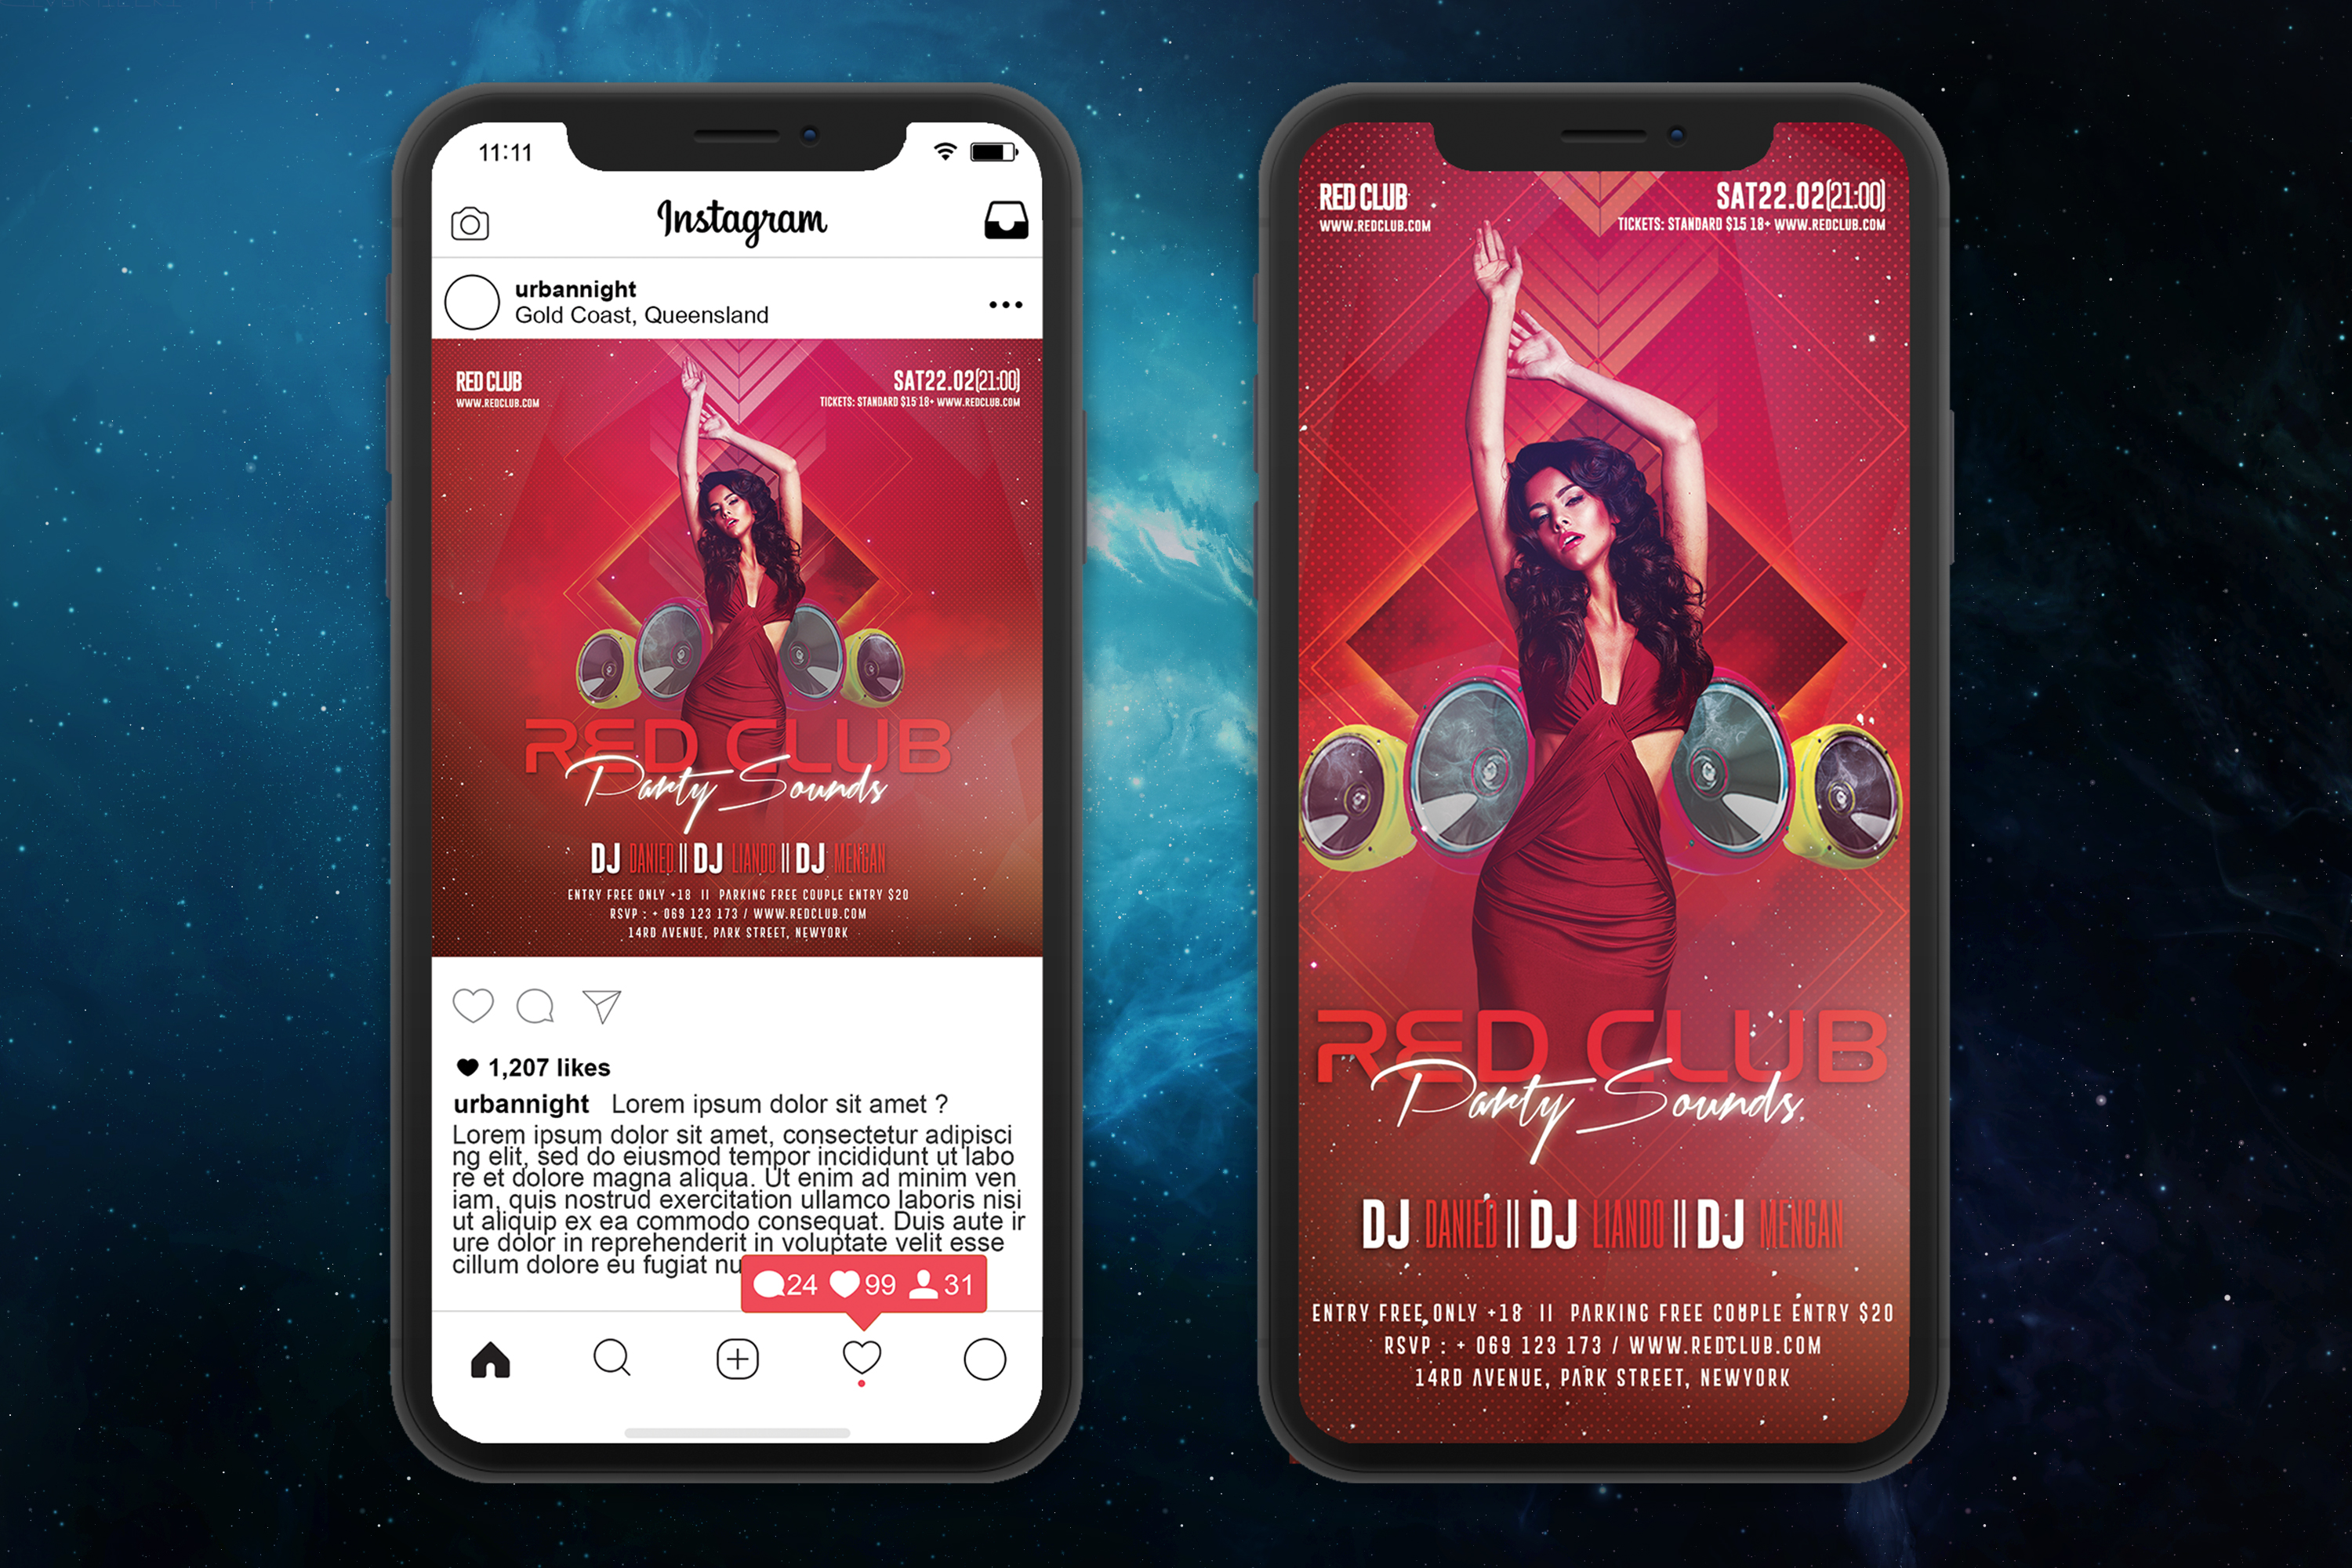 Red Club Party Sounds Flyer Template example image 4